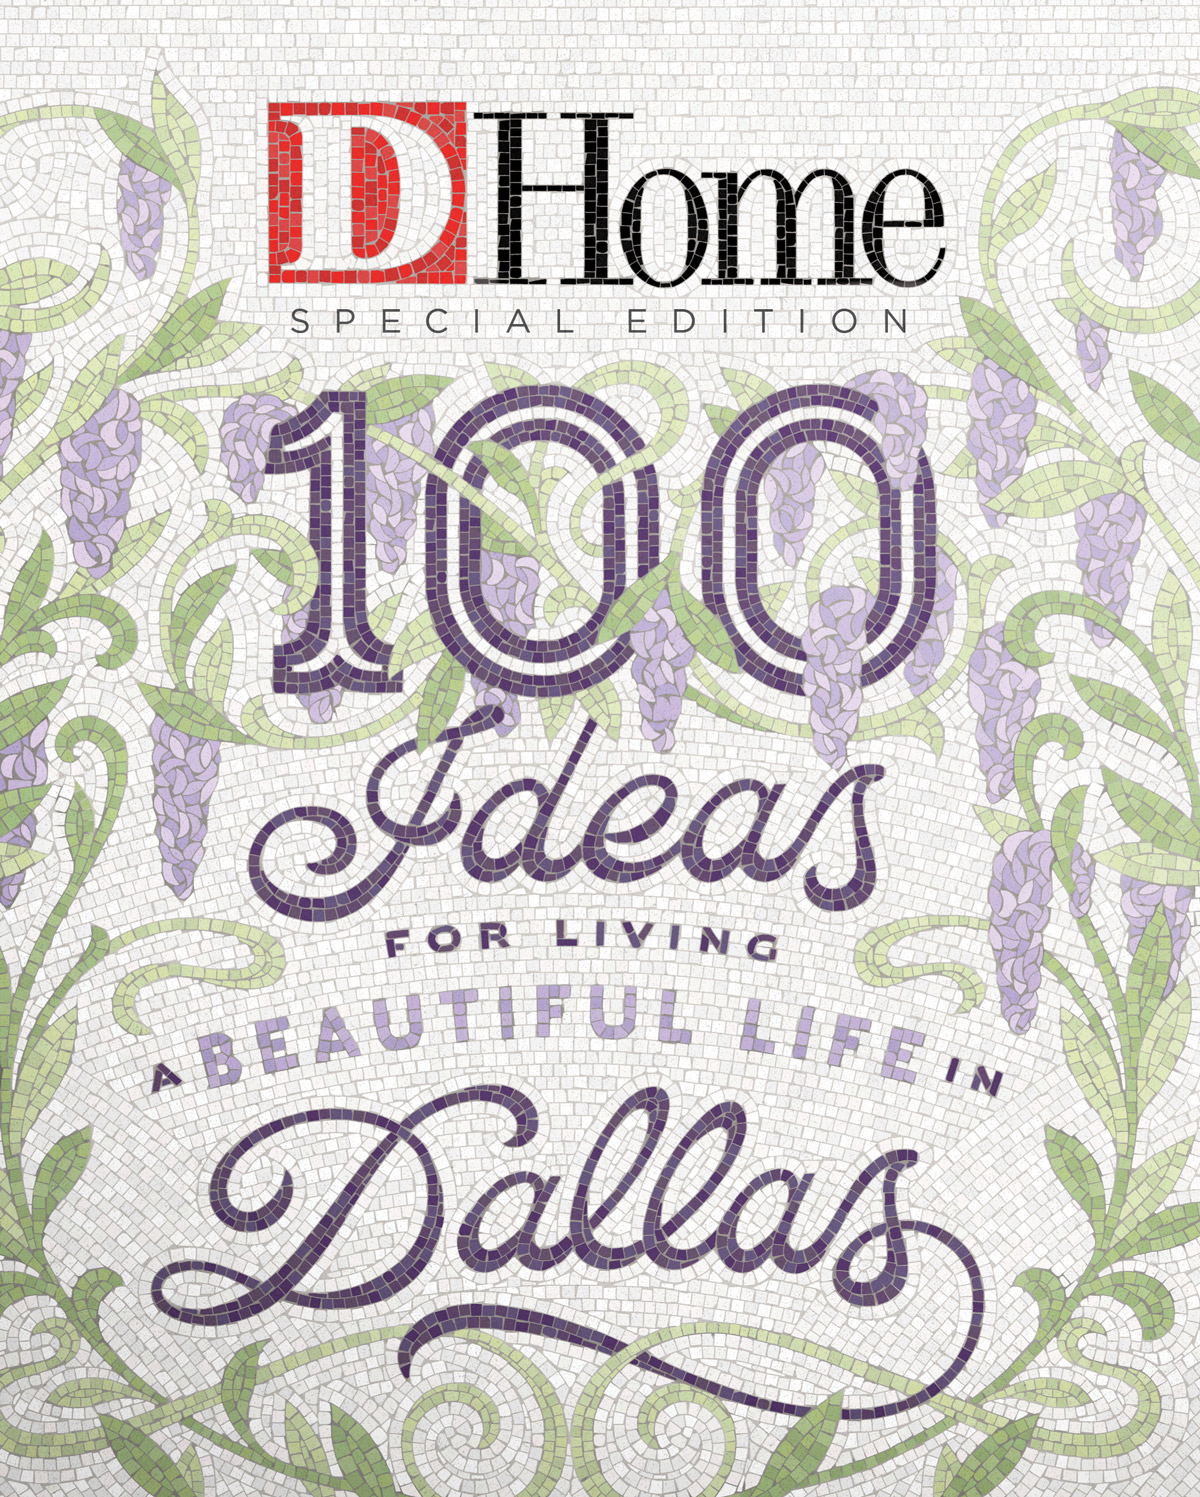 100 Ideas for Living a Beautiful Life in Dallas 2019 cover